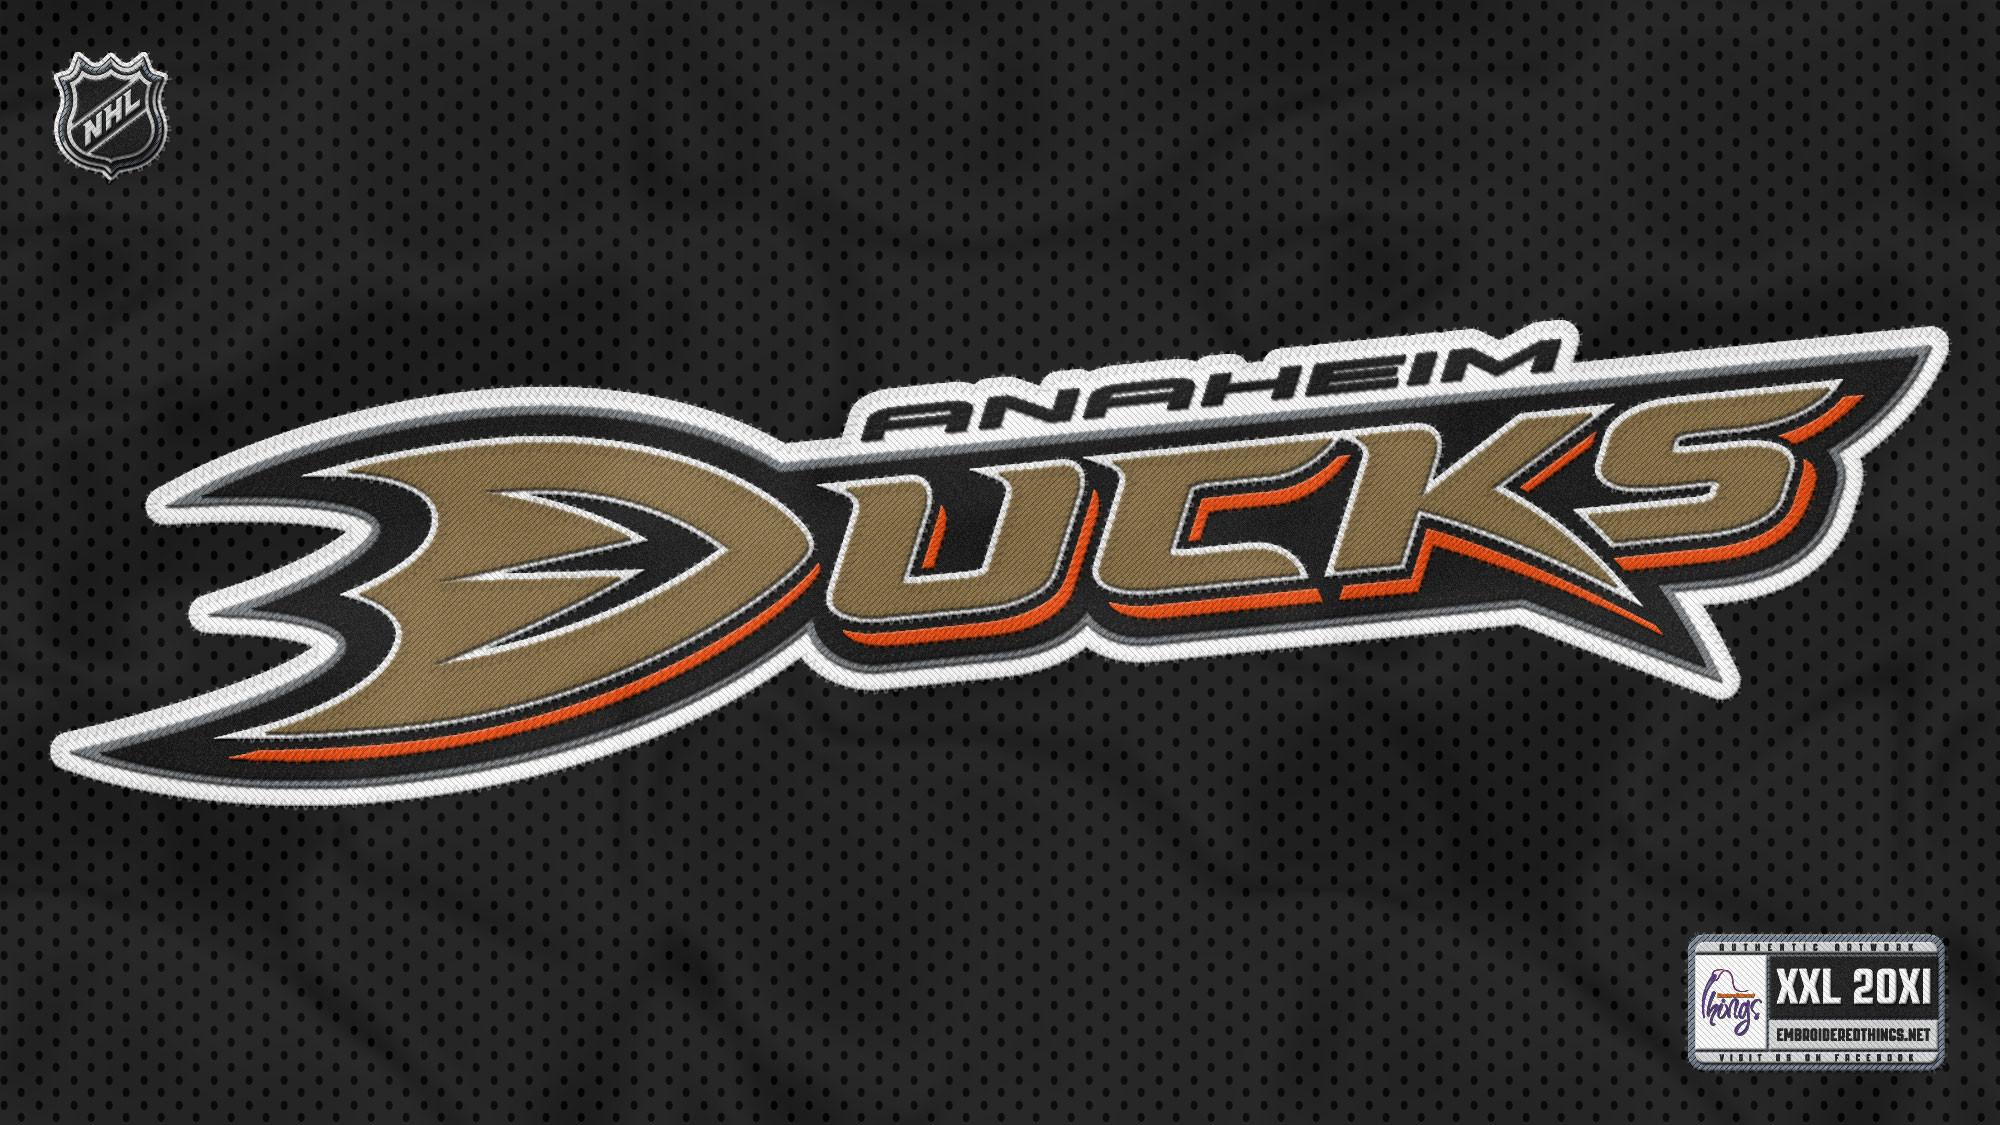 Mighty Ducks Wallpapers